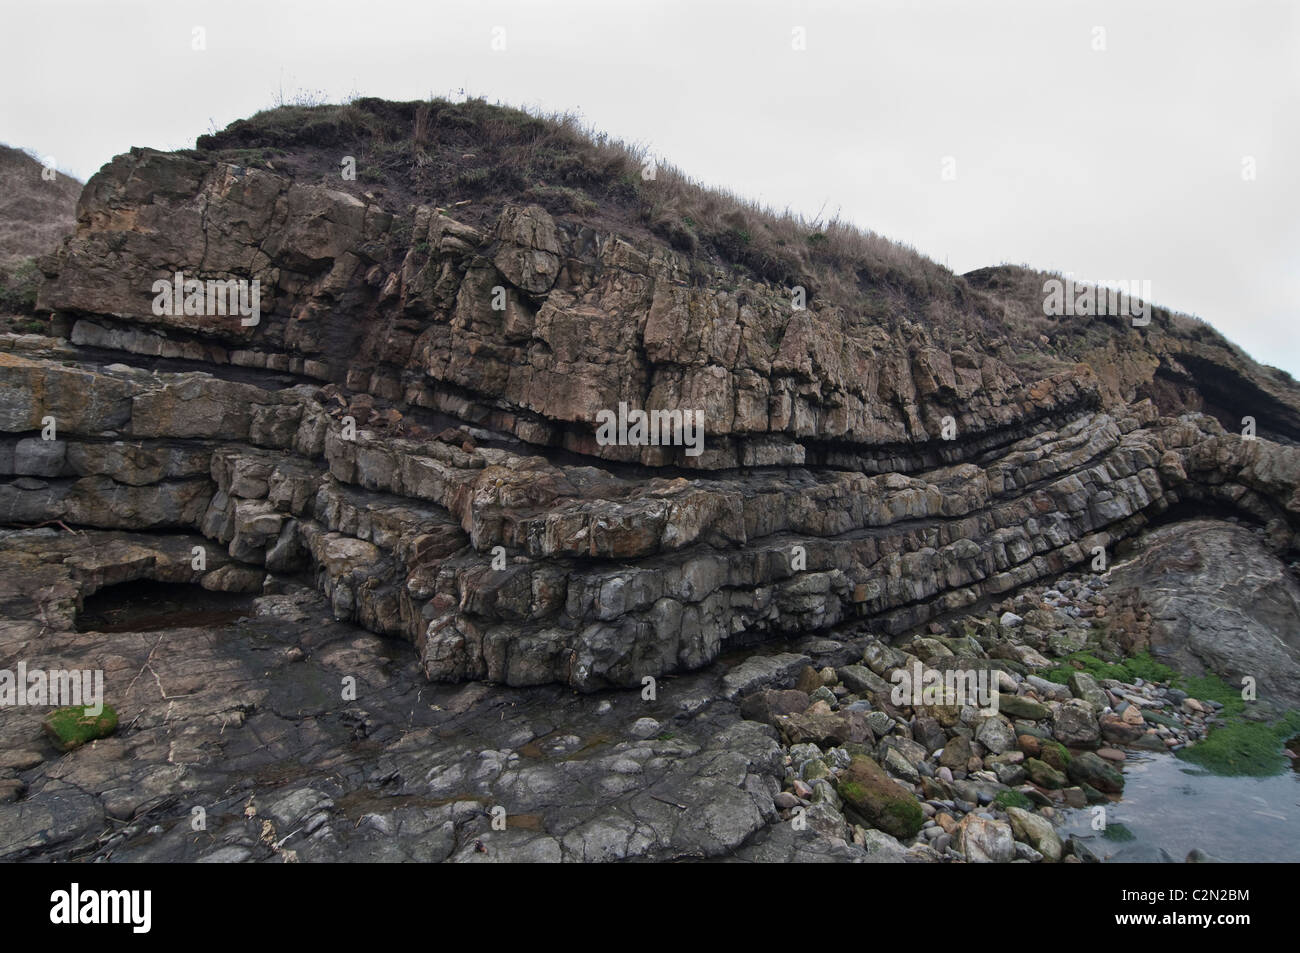 Volcanic magma rock formation at Cocklawburn, Northumberland, England, UK. - Stock Image